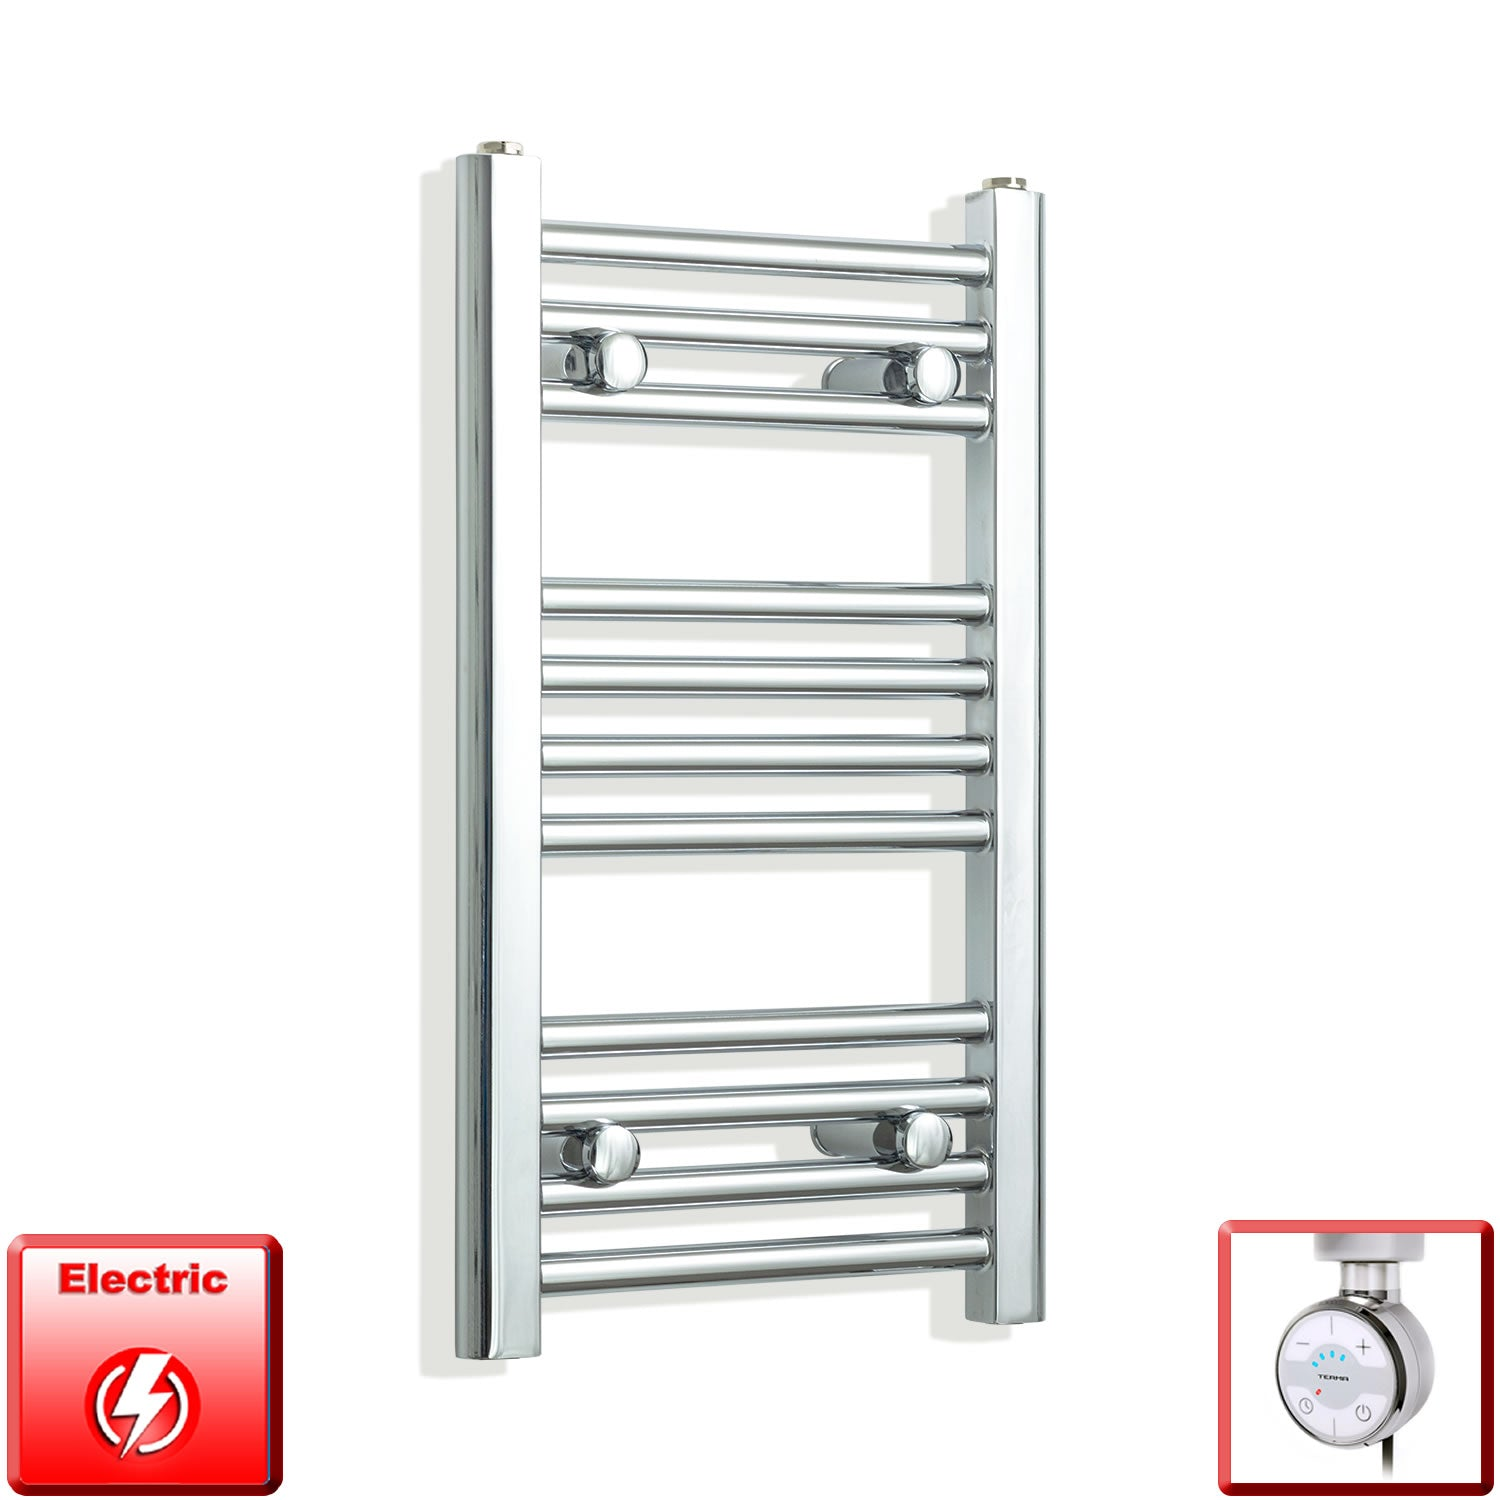 300mm Wide 600mm High Pre-Filled Chrome Electric Towel Rail Radiator With Thermostatic MOA Element